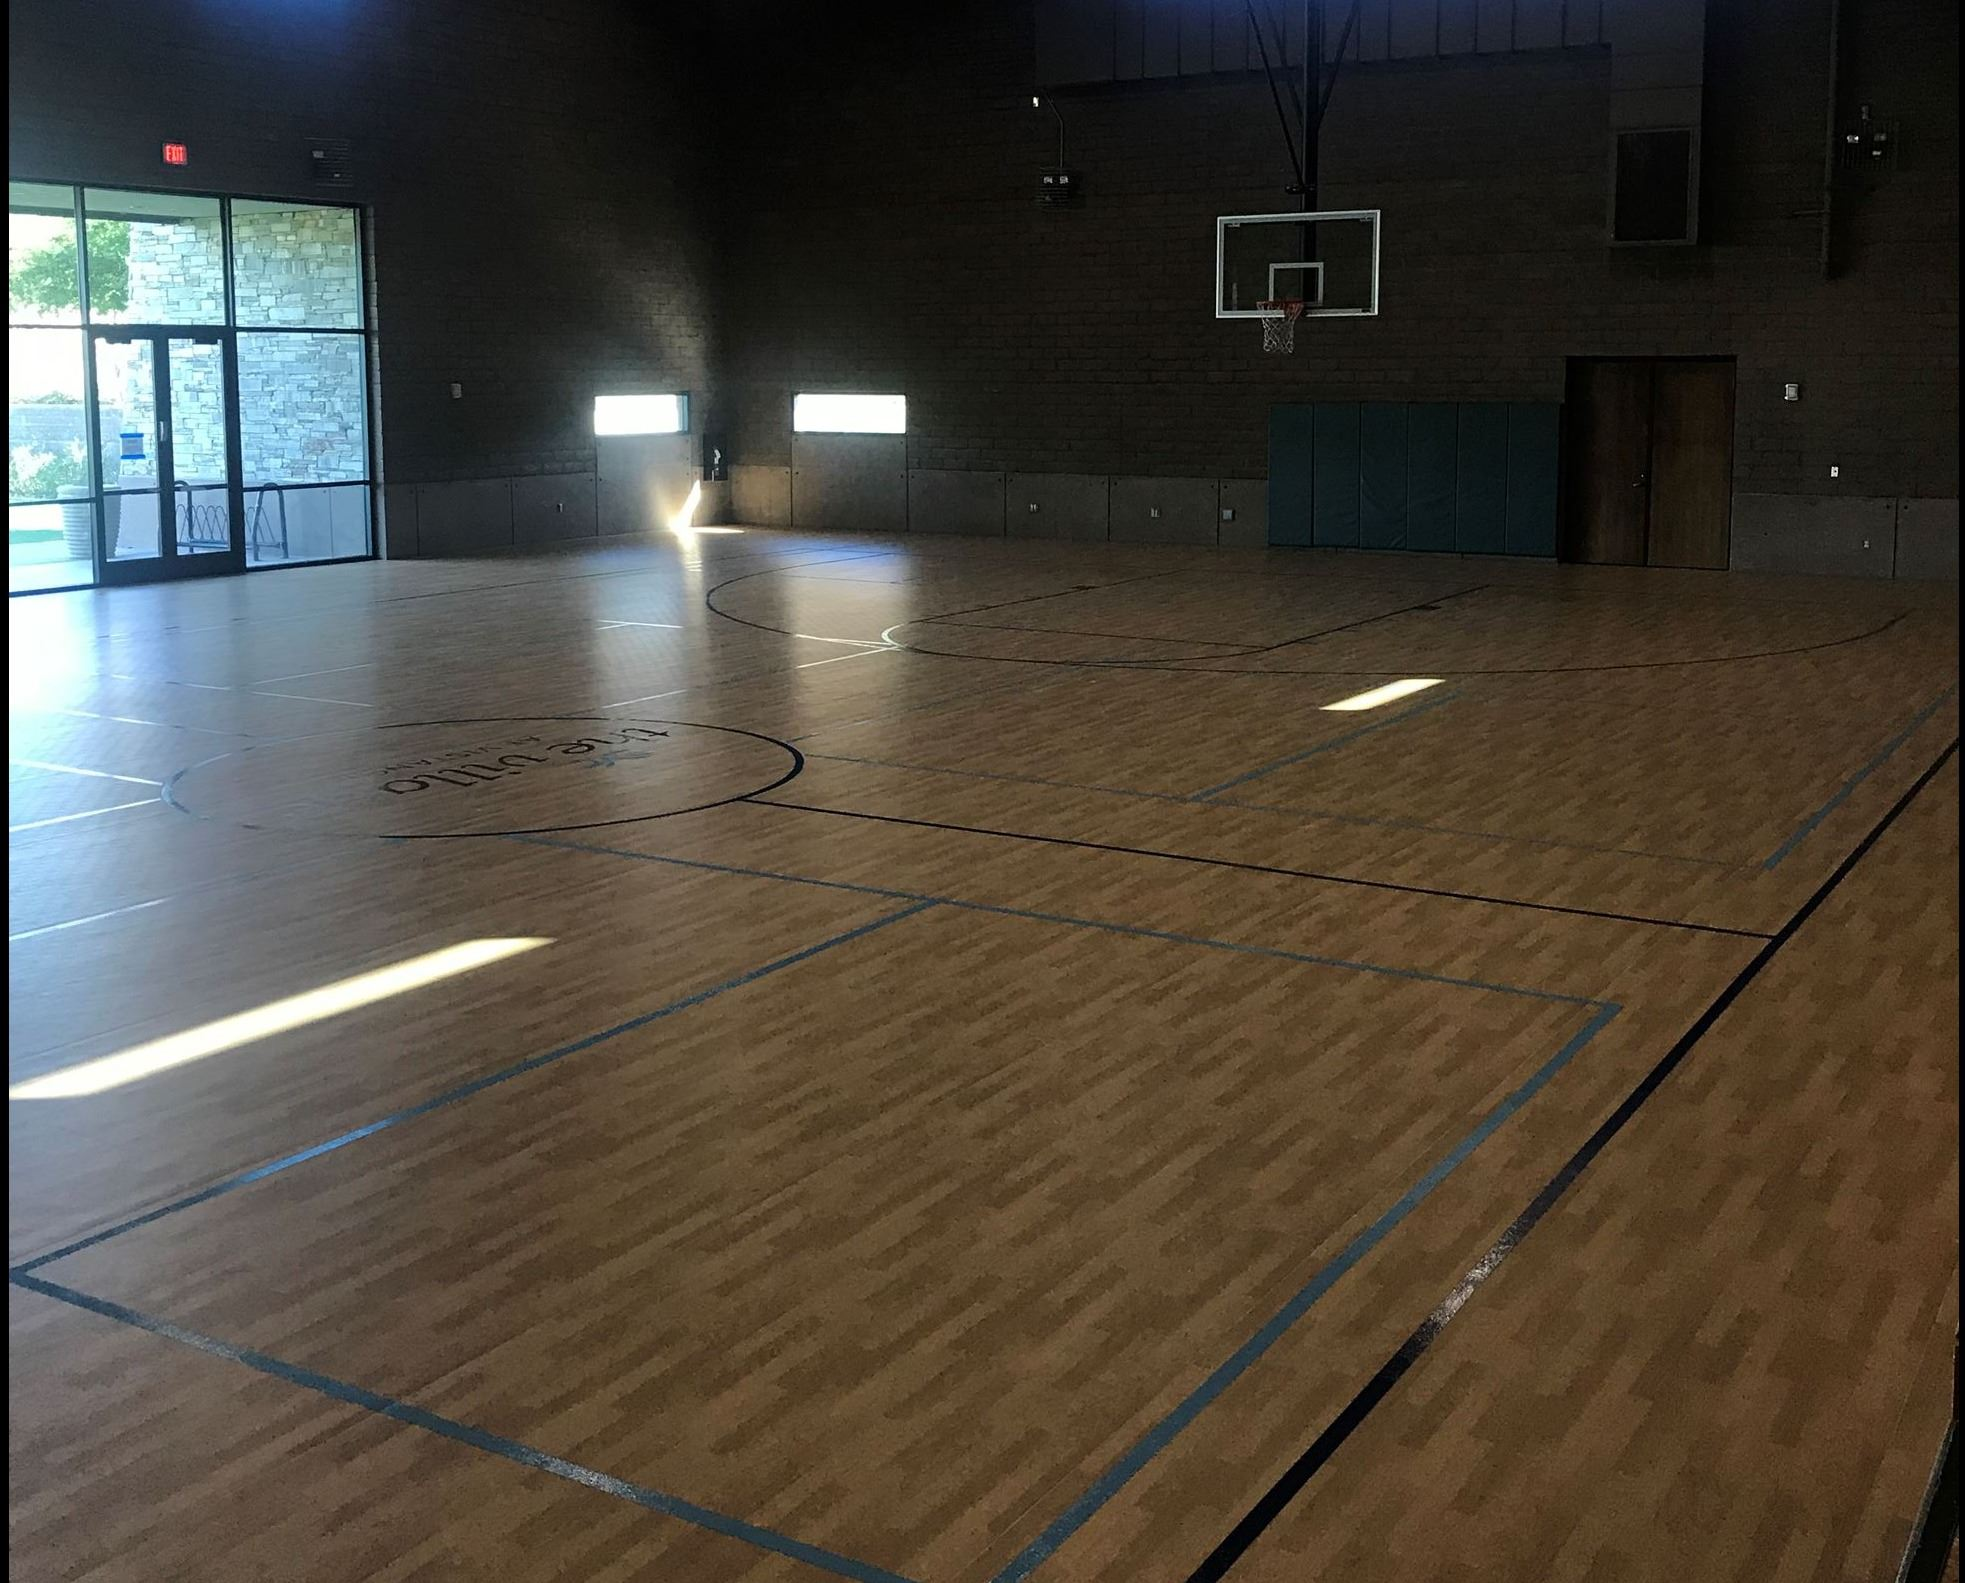 court low product indoor basketball oyqnwzqjxtwf prefab floor steel floors cost china building with